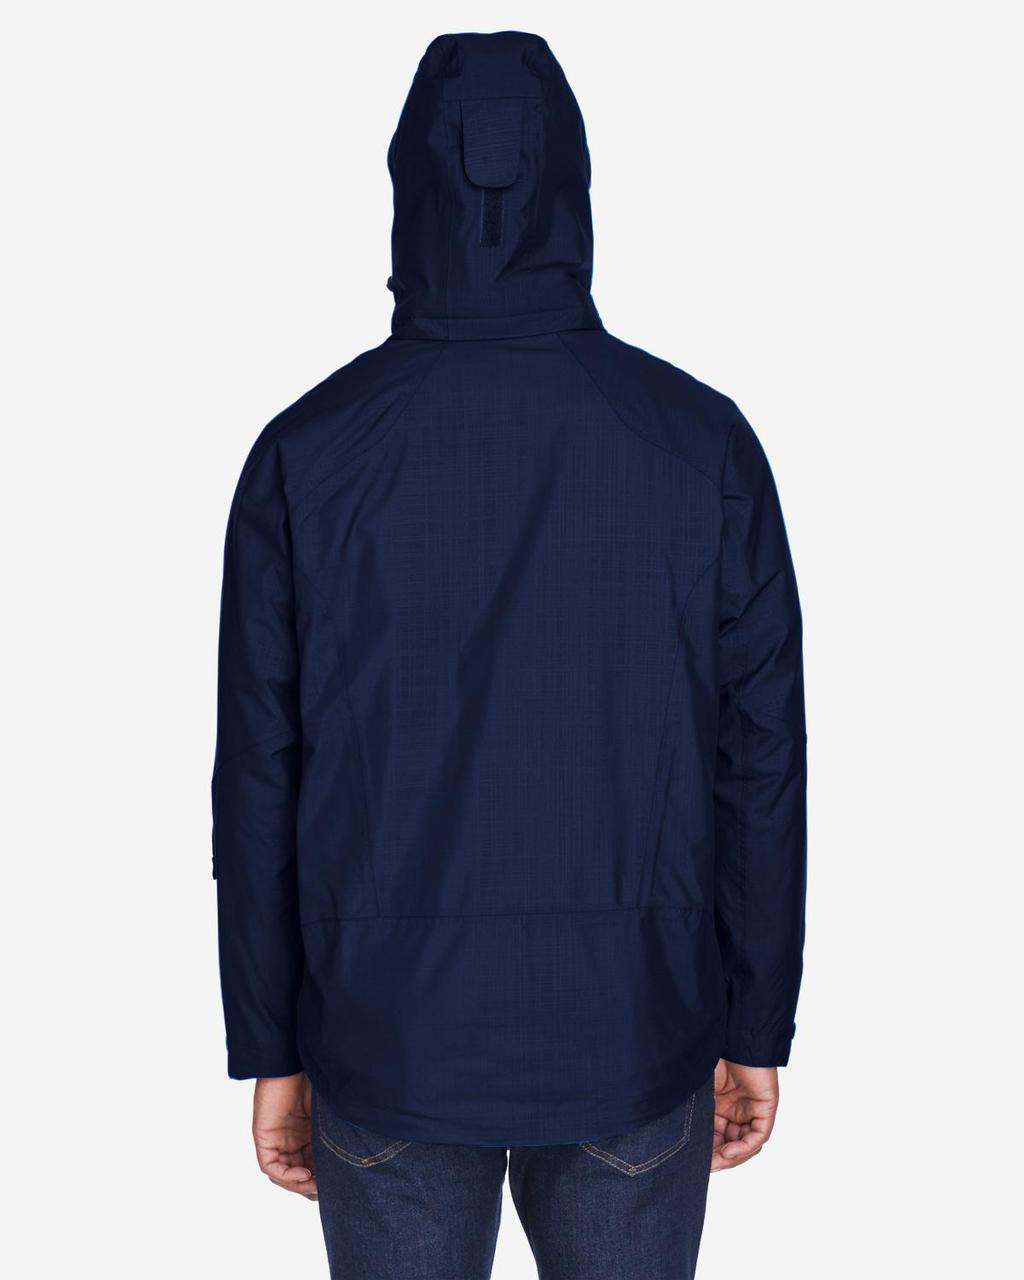 Classic Navy - Back, 88178 North End Caprice 3-in-1 Jacket with Soft Shell Liner | BlankClothing.ca